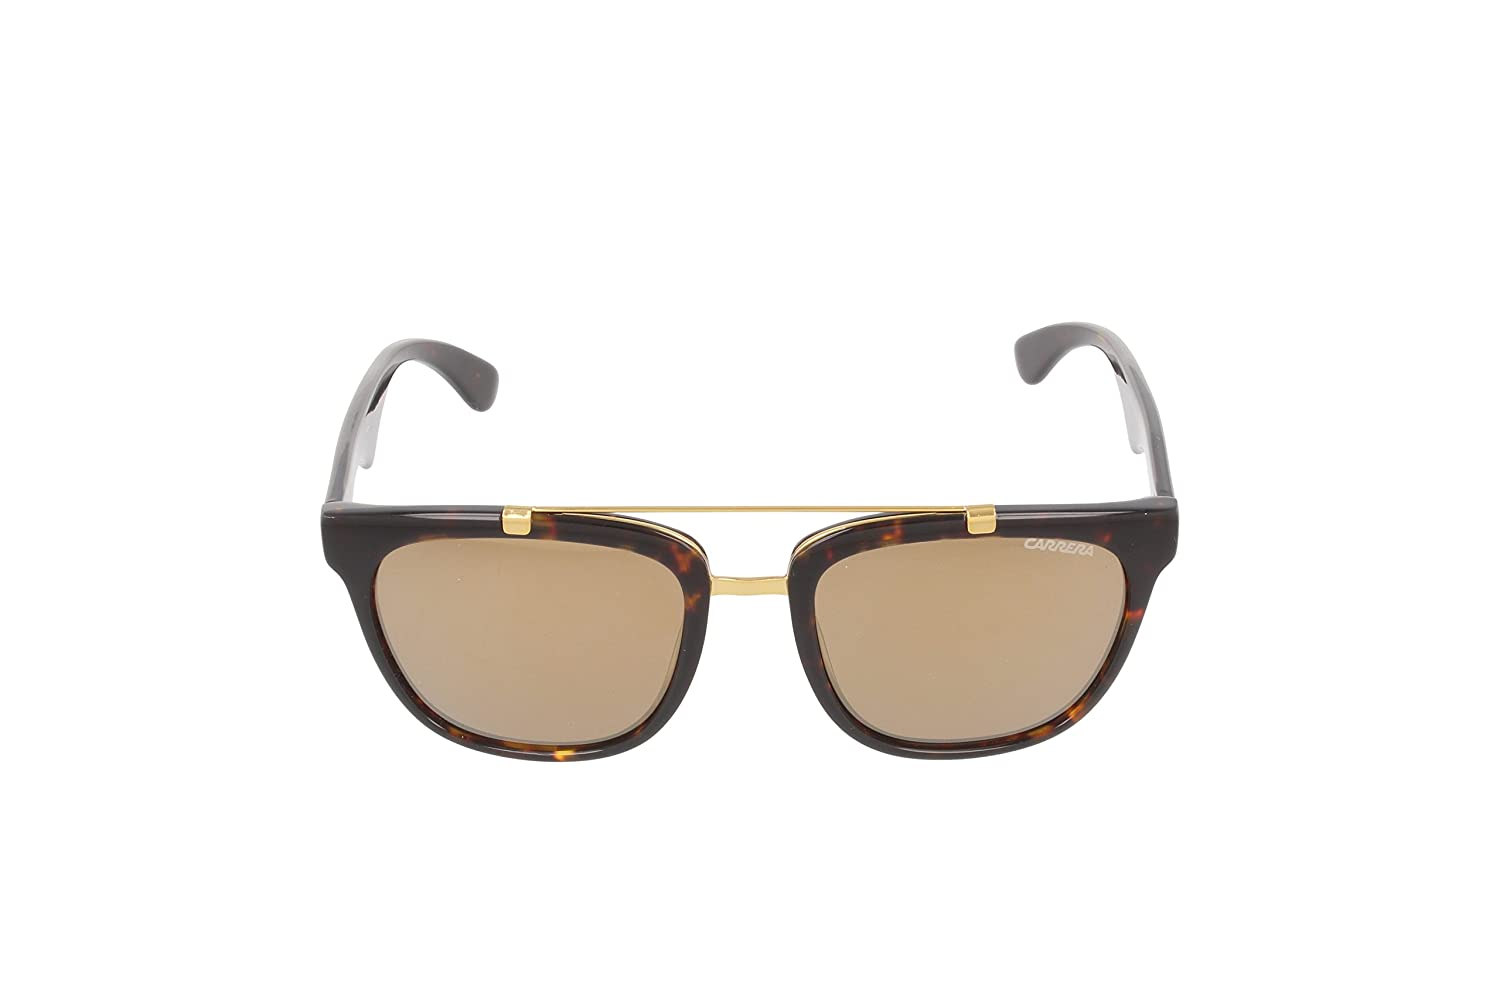 05fd9a58dfab7 Carrera Mirrored Square Unisex Sunglasses - (CARRERA 6002 TVD 53VP ...